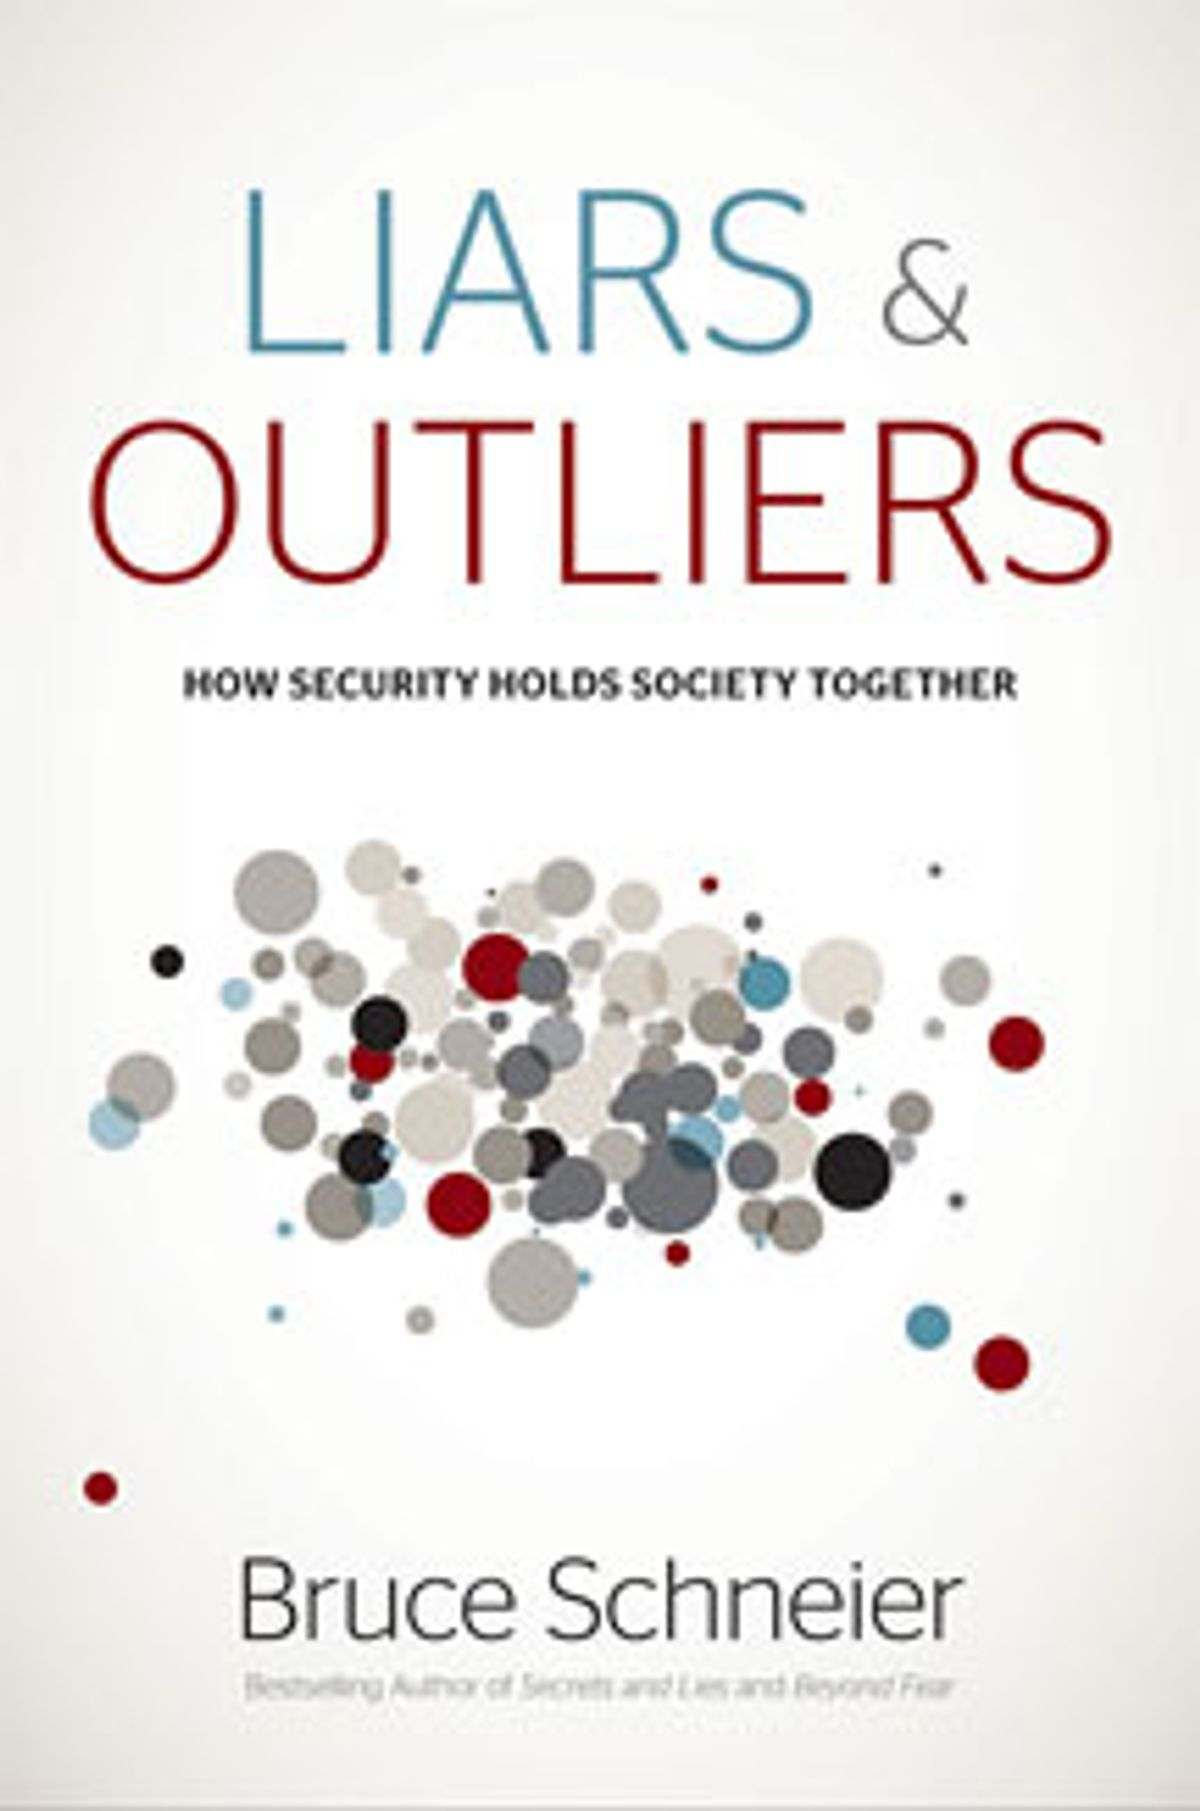 Review: Liars & Outliers